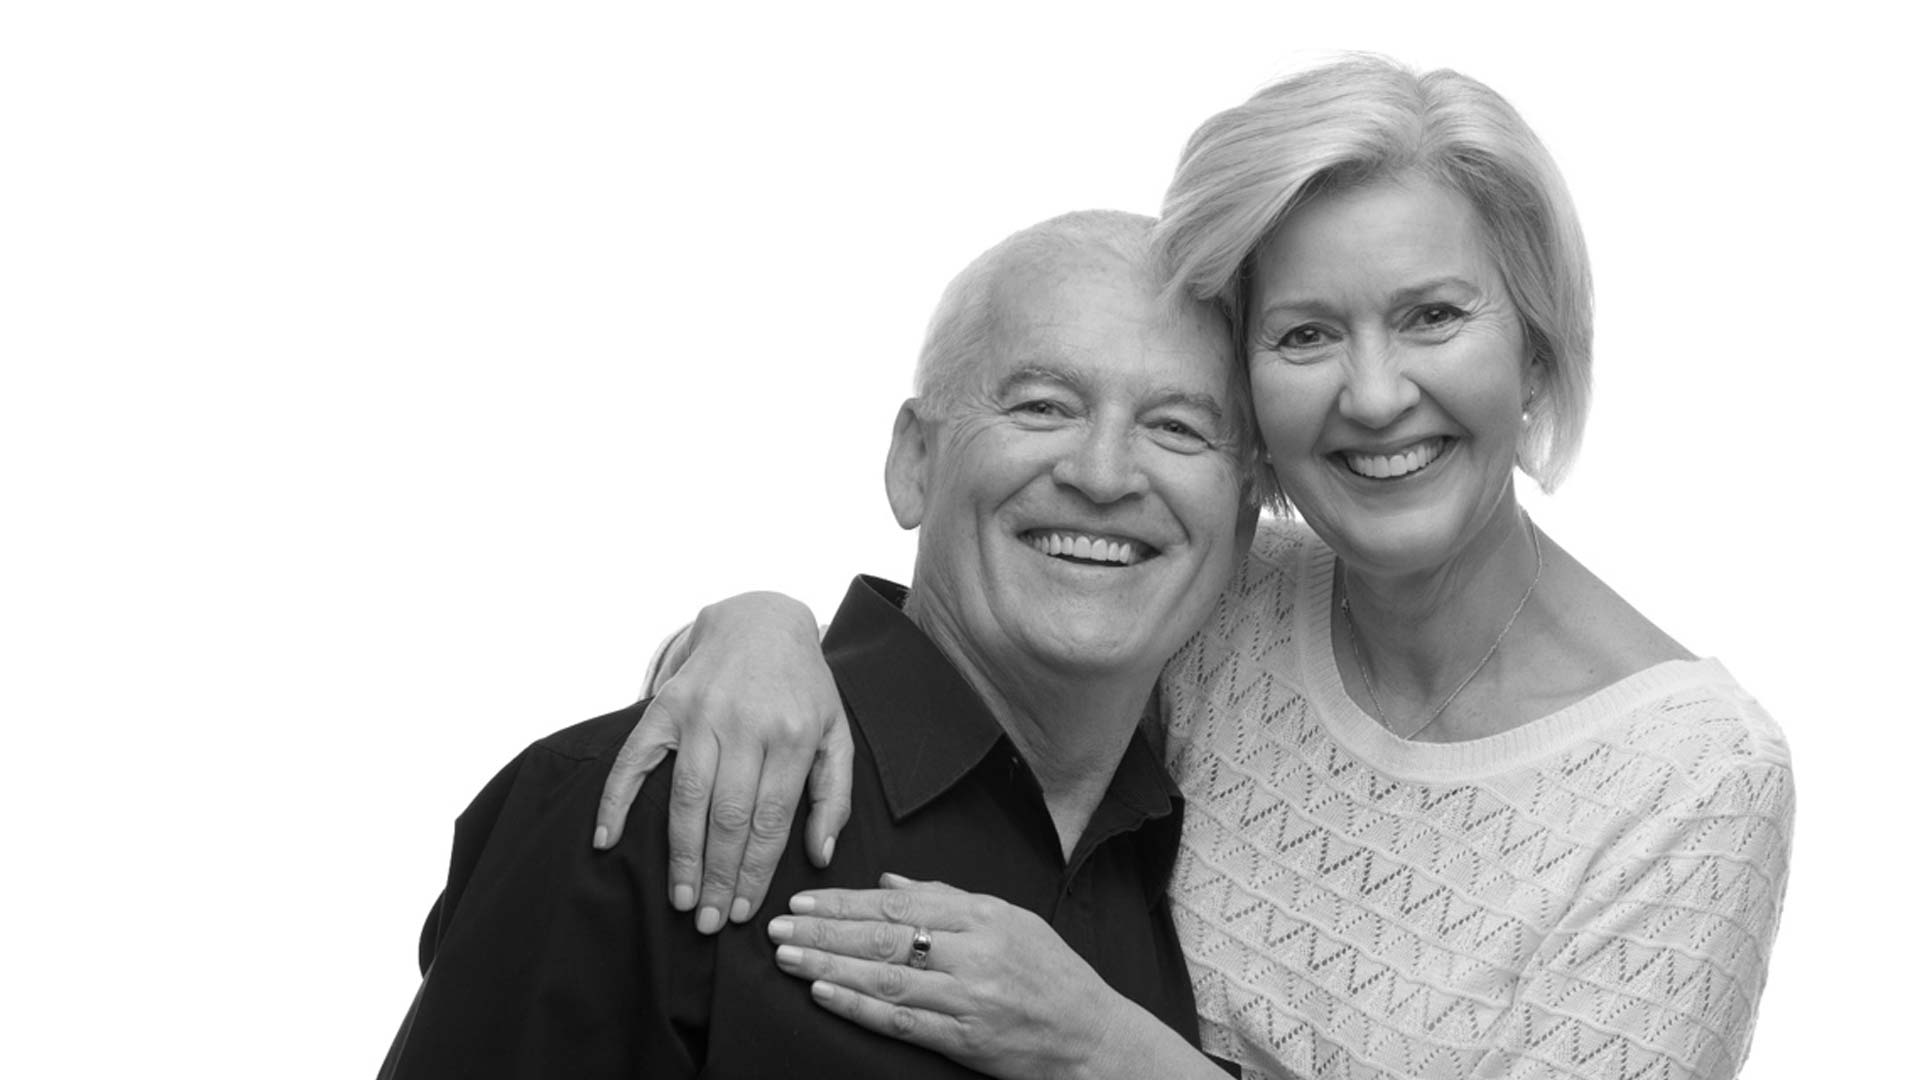 Two patients smiling to show their new smiles restored using All on 4 dental implants.